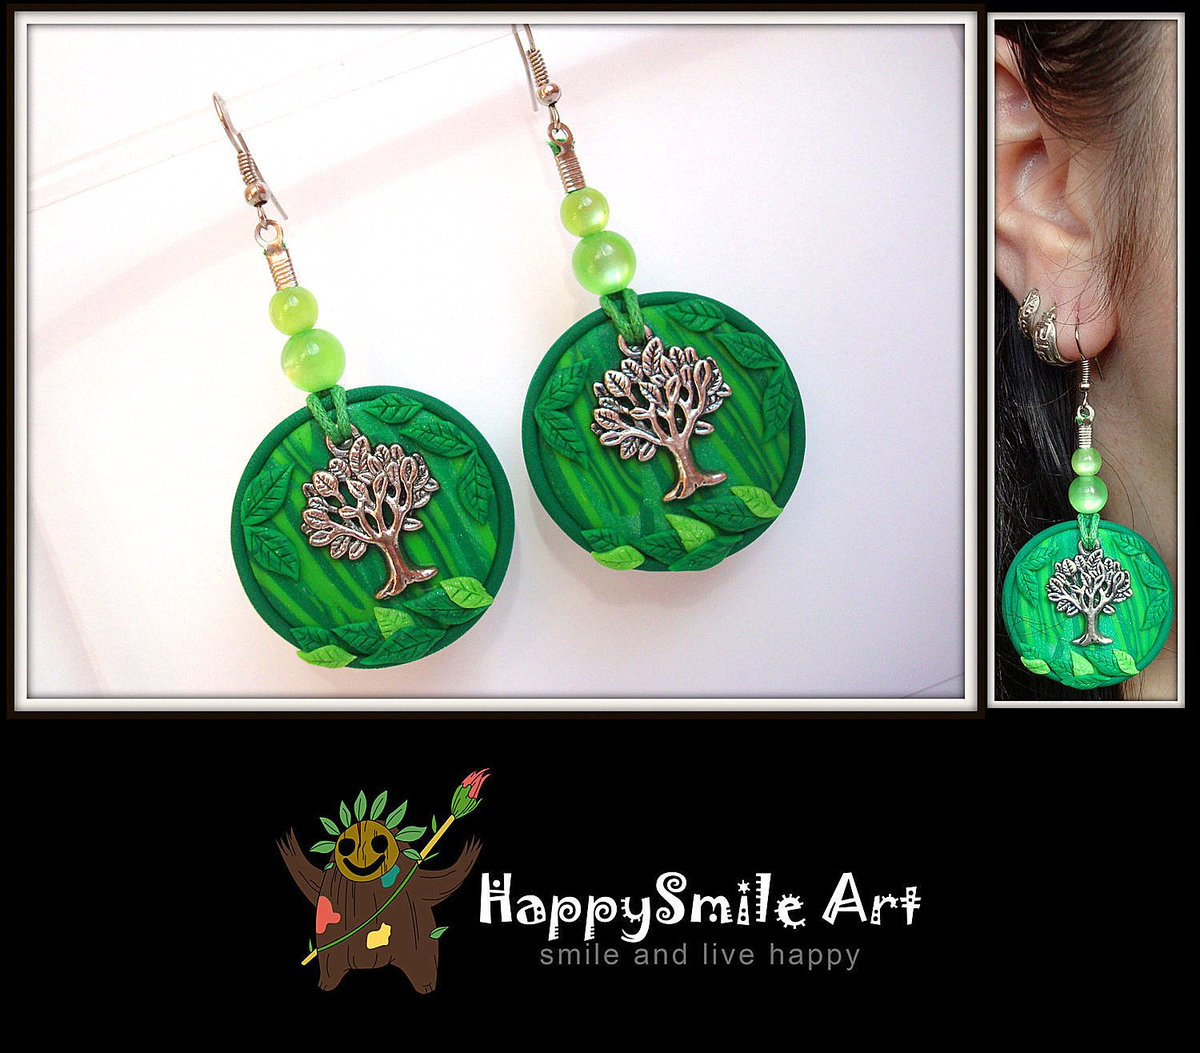 https://www. etsy.com/listing/238720 184/tree-of-life-jewelry-one-of-a-kind-tree?ref=shop_home_active_2 &nbsp; …  Use Coupon Code MOTHERSDAY and get 30% OFF! With this earrings you will get a BONUS free gift similar pendant!  #MothersDay #giftideas #giftforher #EtsySeller #oneofakind #jewelryonetsy #etsyshop #etsyjewelry #shopping #handmadeaccessory #treeoflife<br>http://pic.twitter.com/ctgdNdcqgR